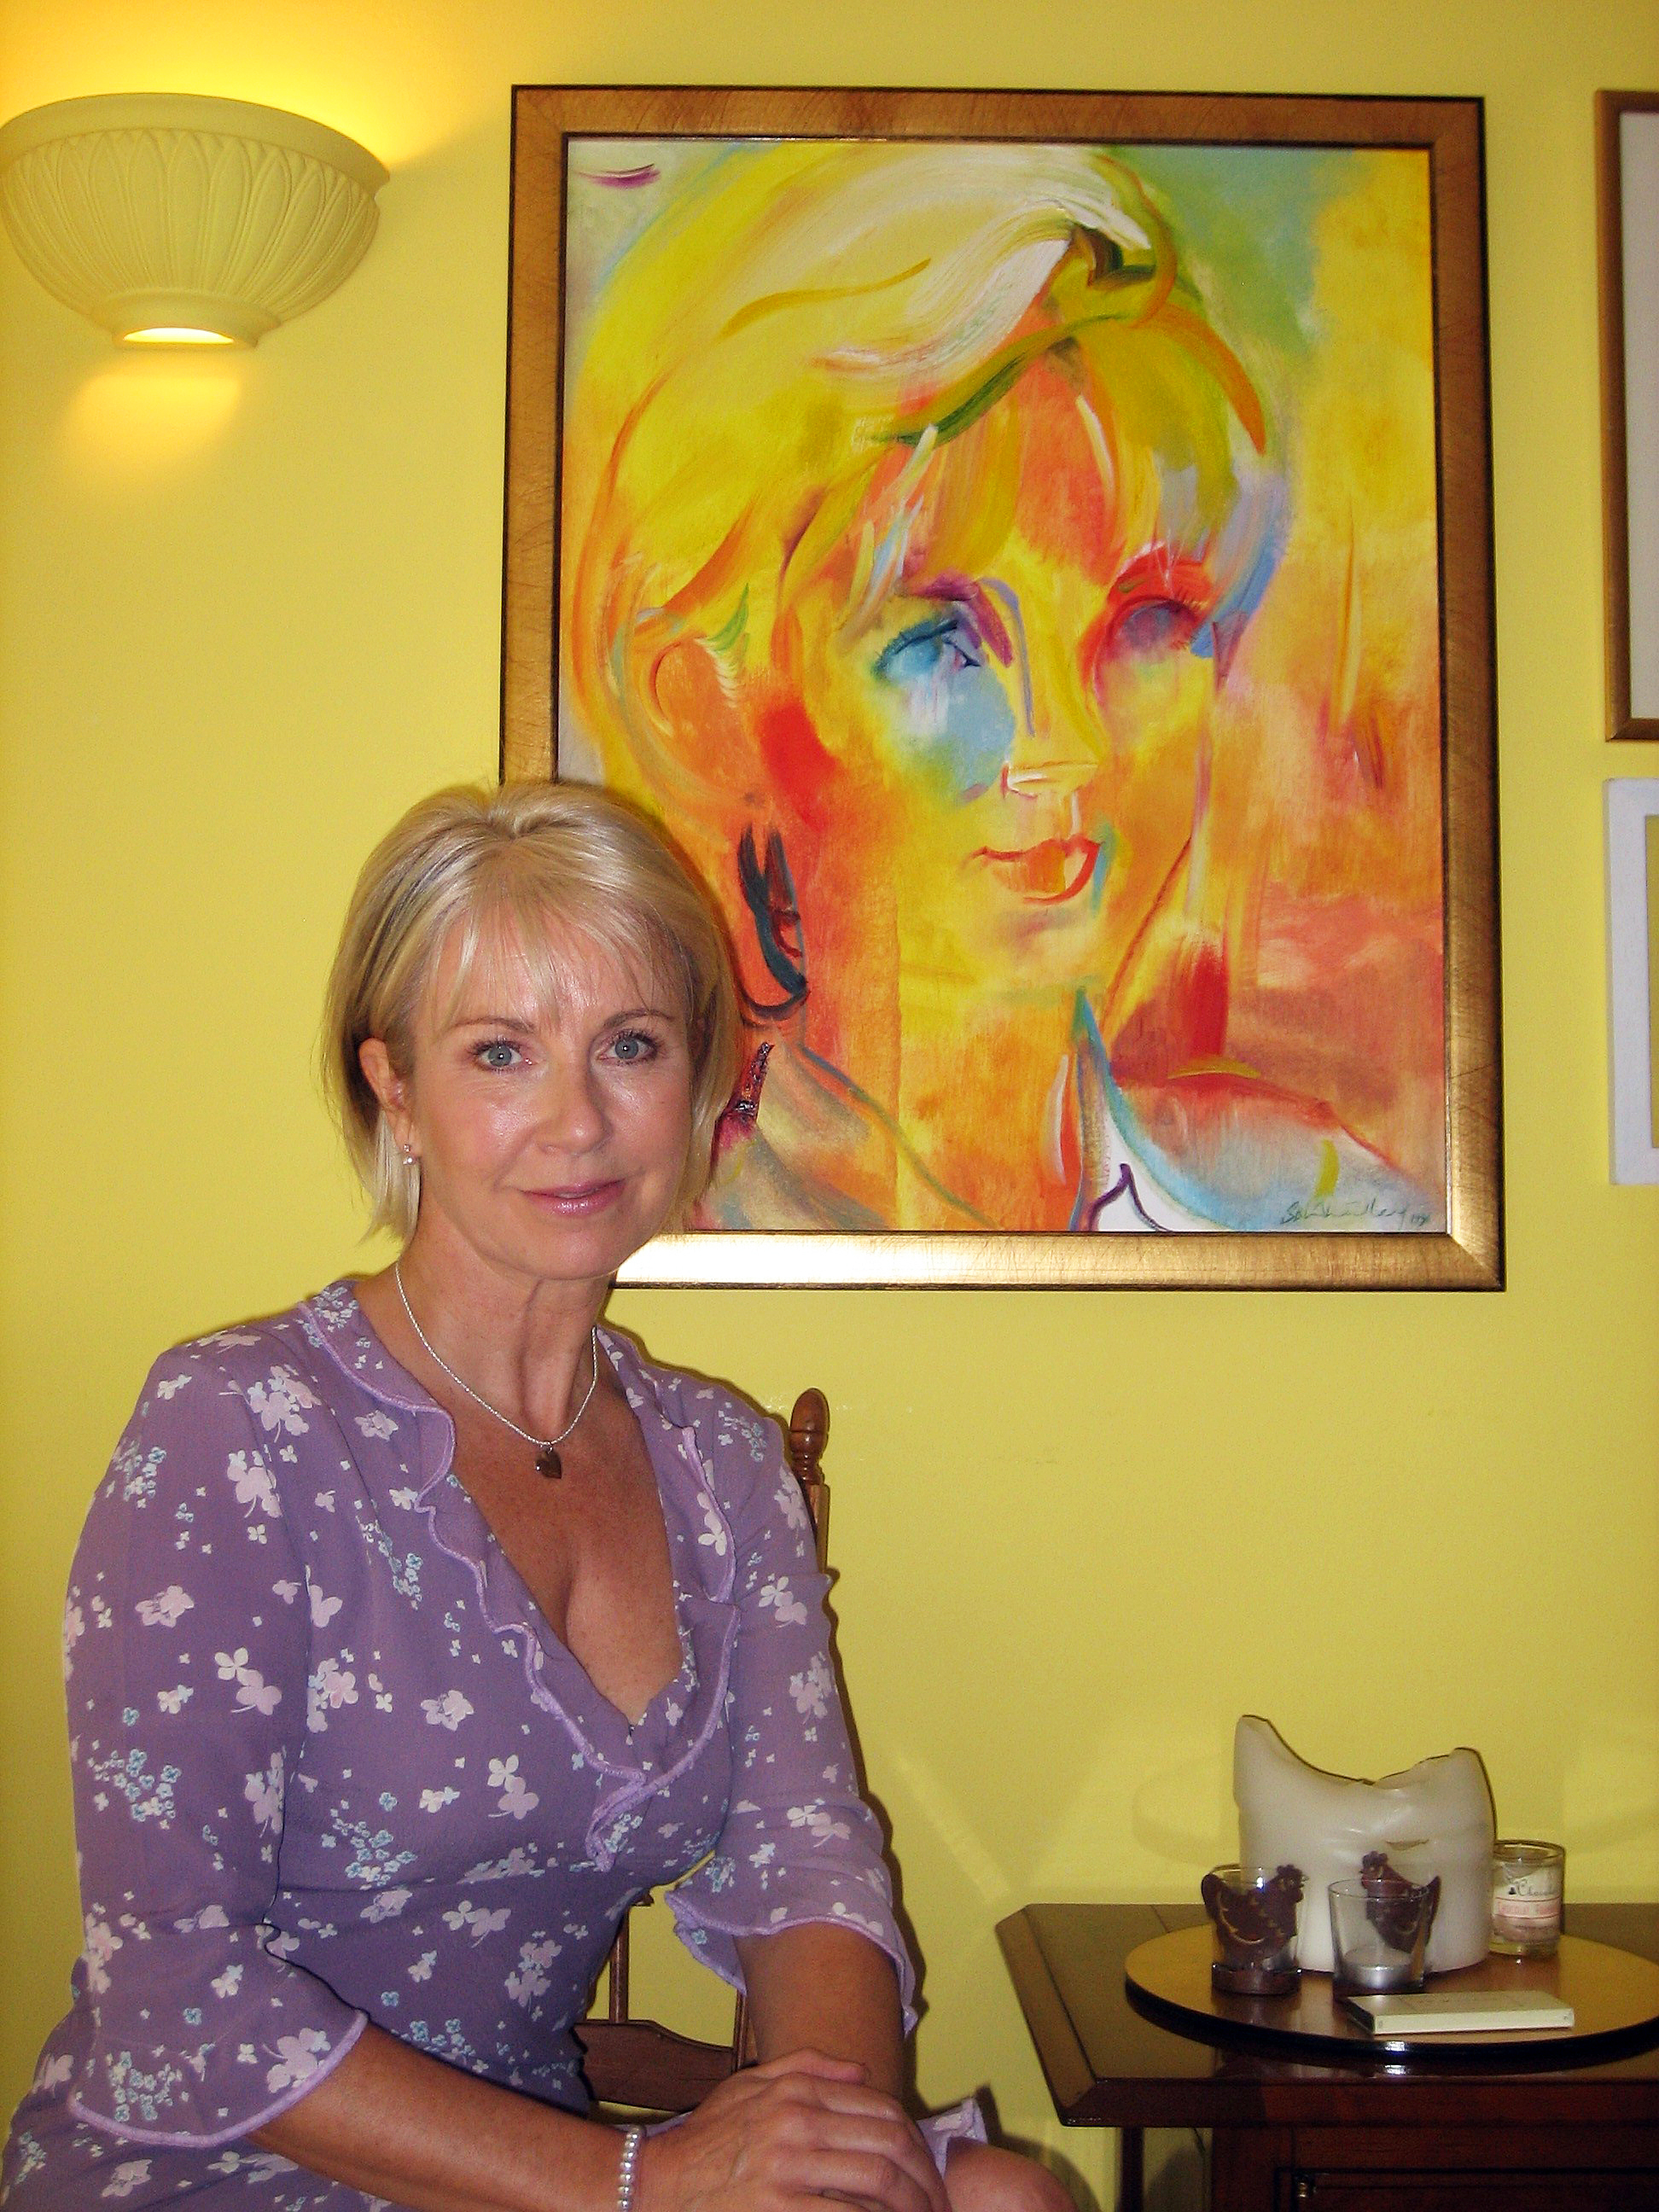 TV presenter Sarah Greene in 2006 with her 1996 portrait by Stephen B. Whatley portrait. 2006